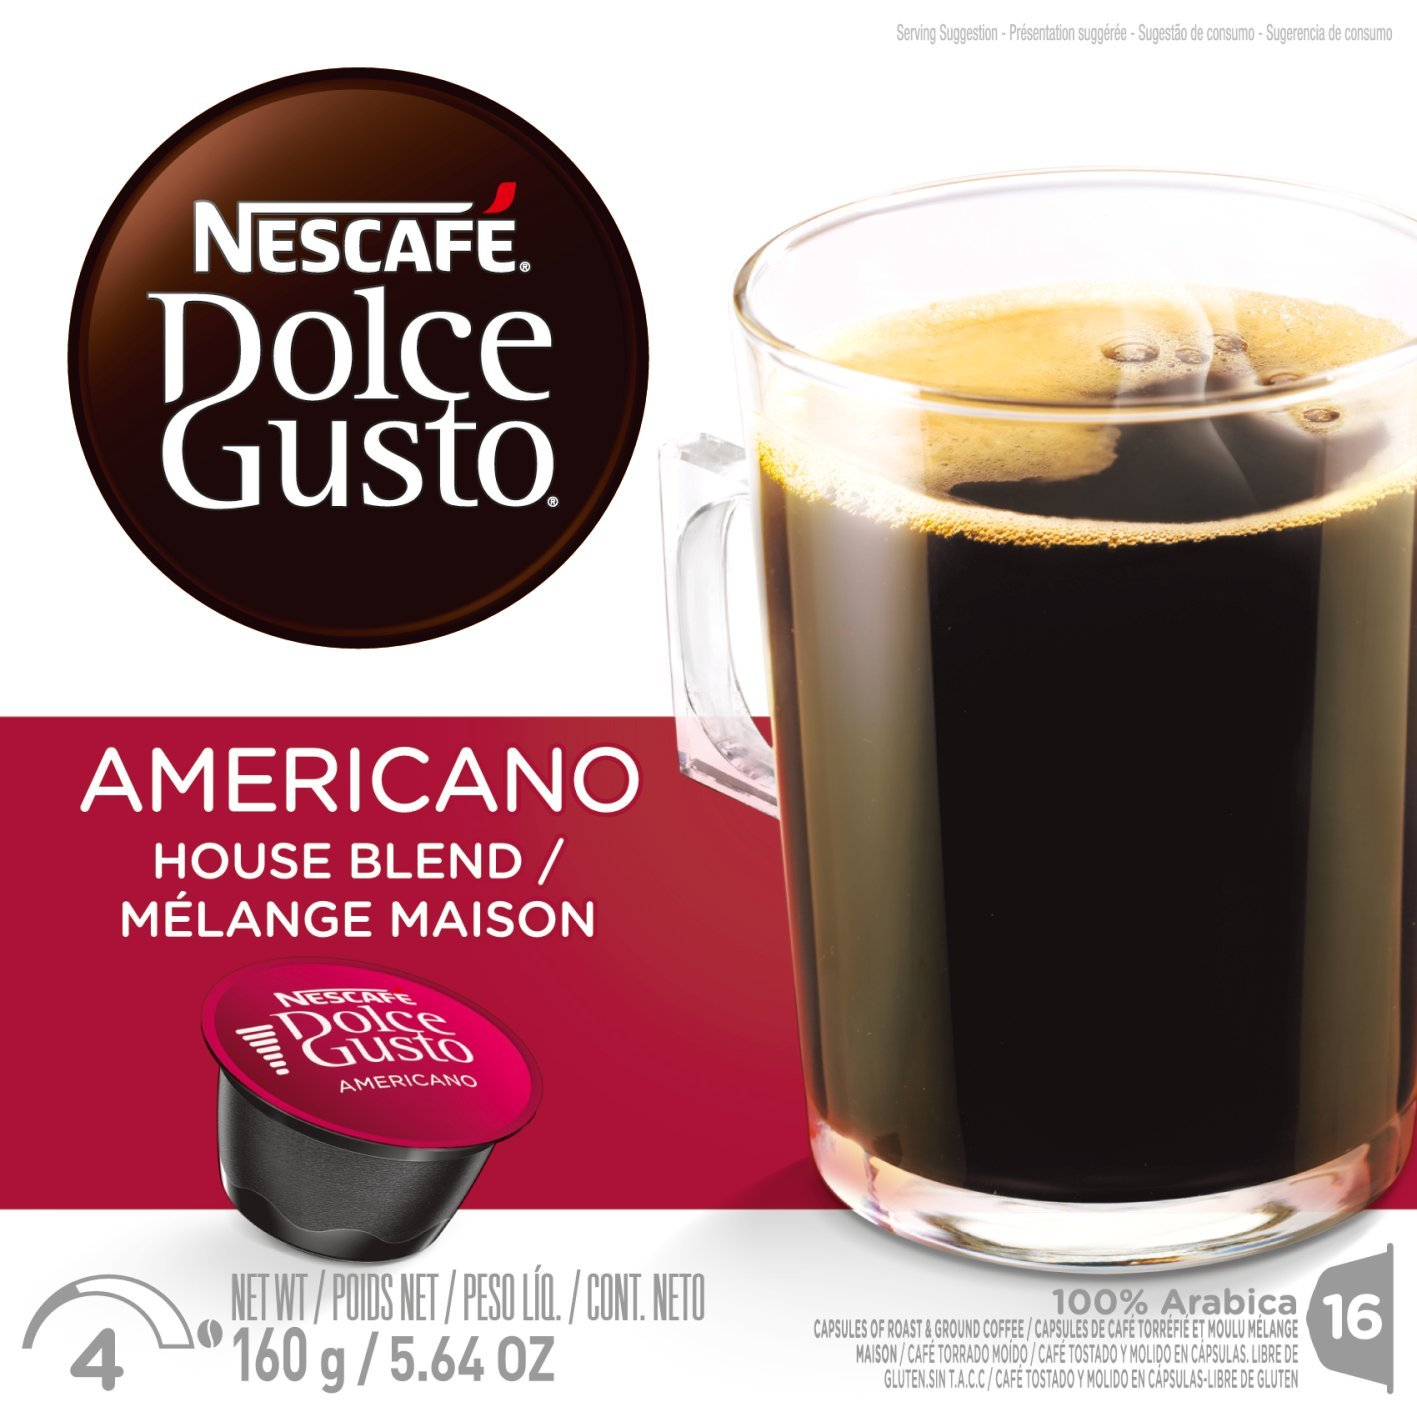 Nescaf Dolce Gusto for Nescaf Dolce Gusto Brewers, Caff Americano (House Blend),